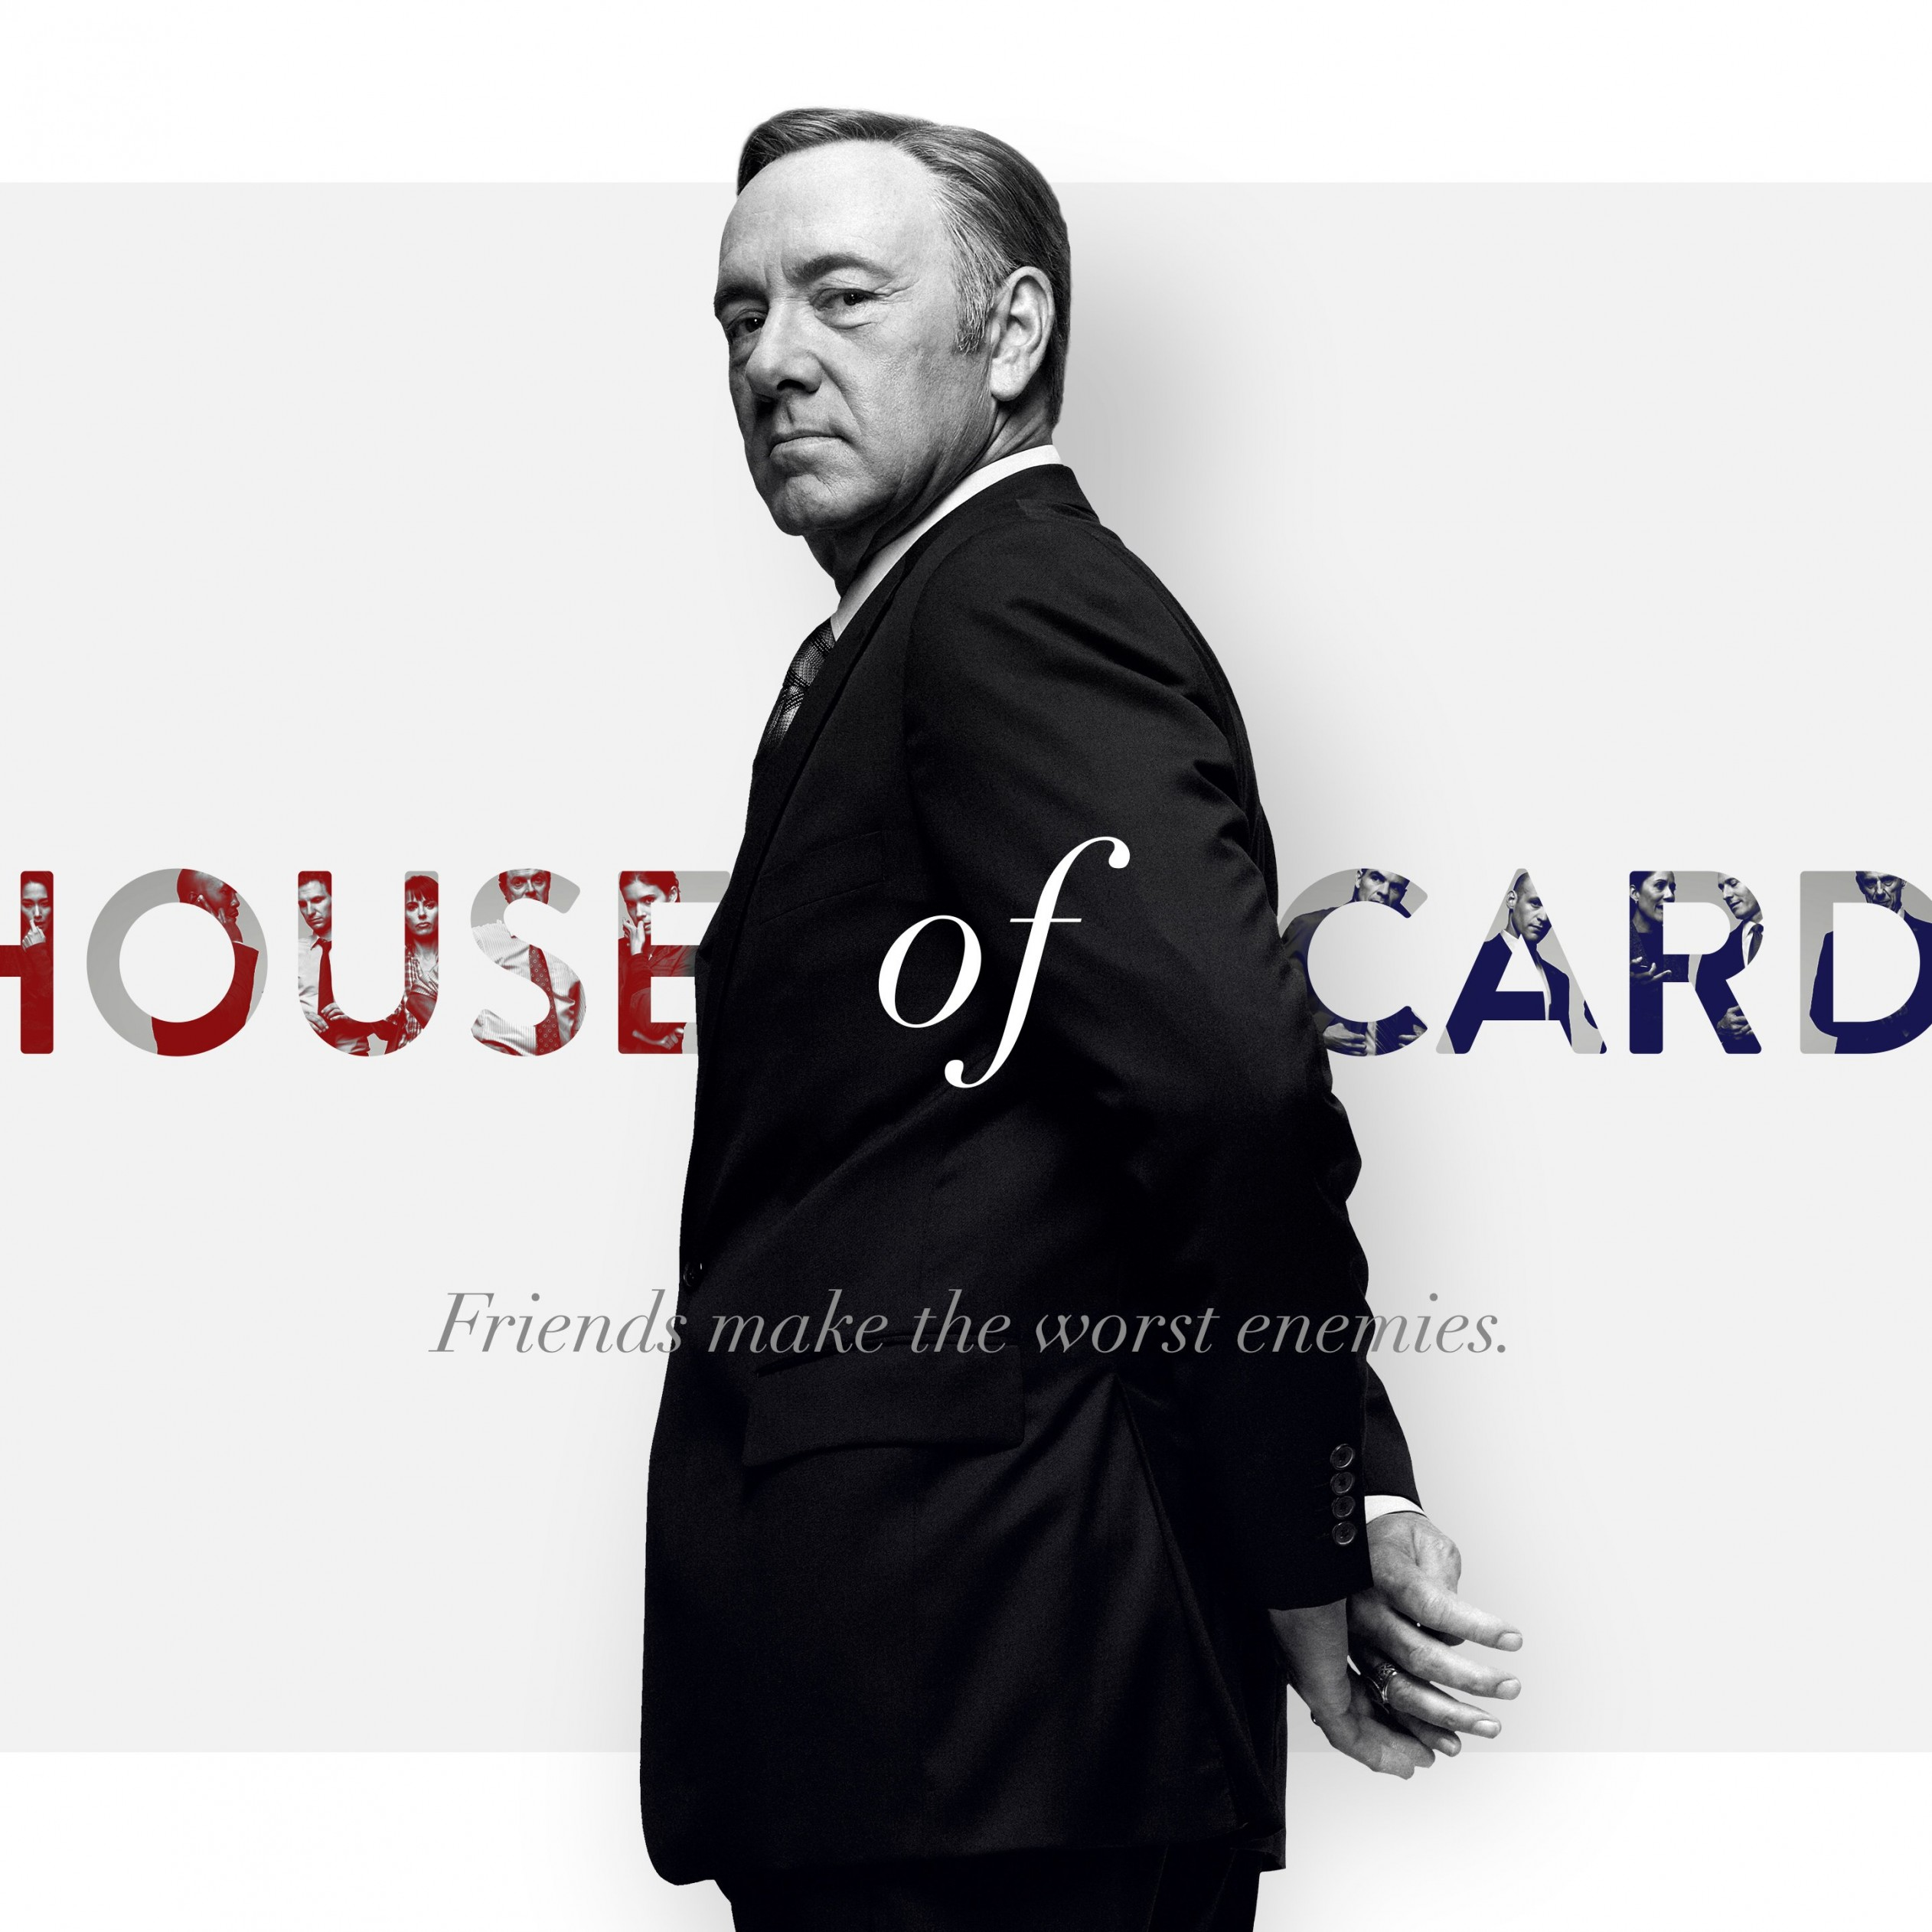 Frank Underwood - House of Cards Wallpaper for Apple iPad mini 2